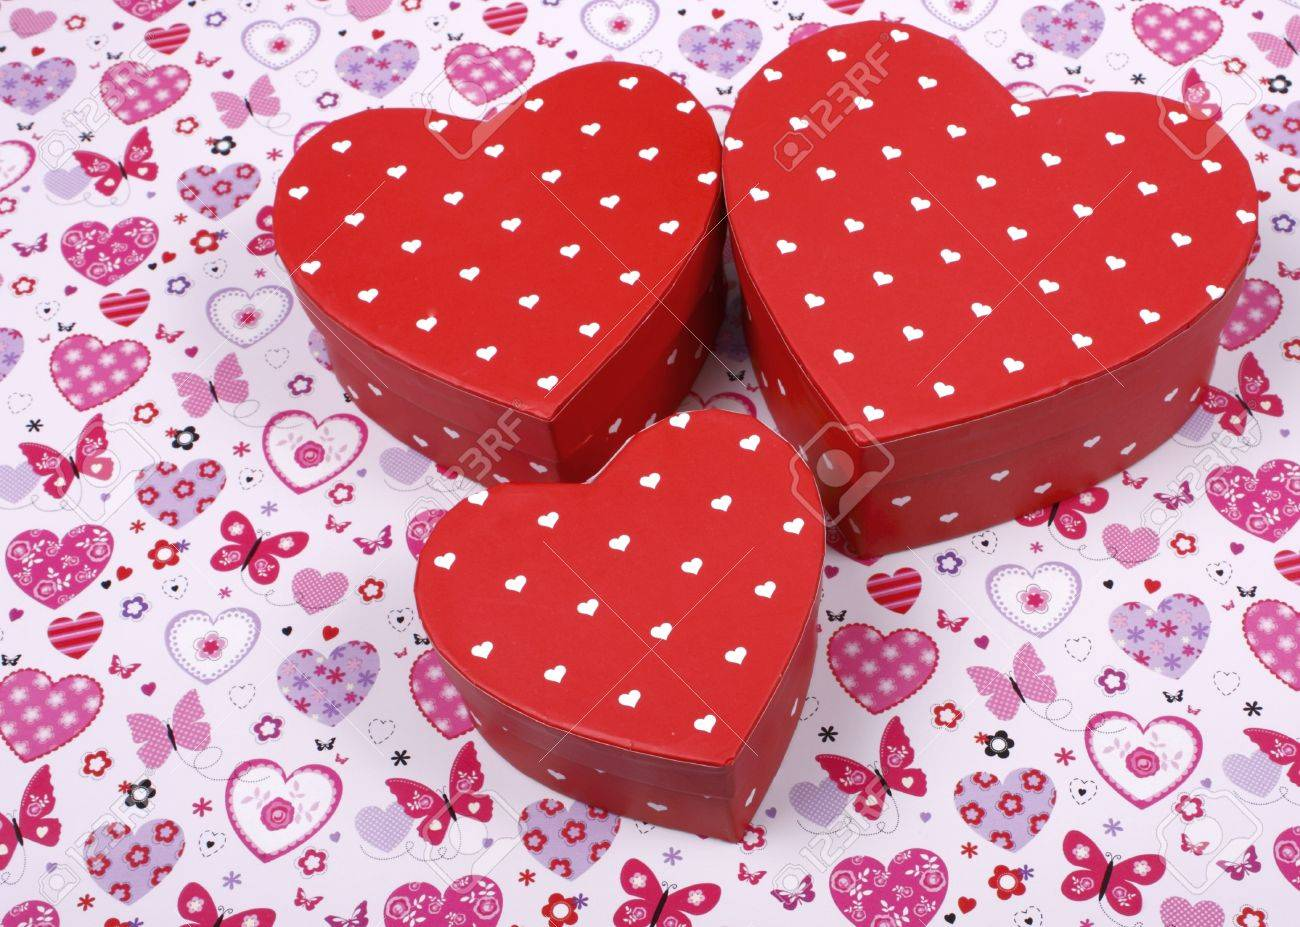 An Image Of Heart Shaped Gift Boxes Which Show The Idea Of ...